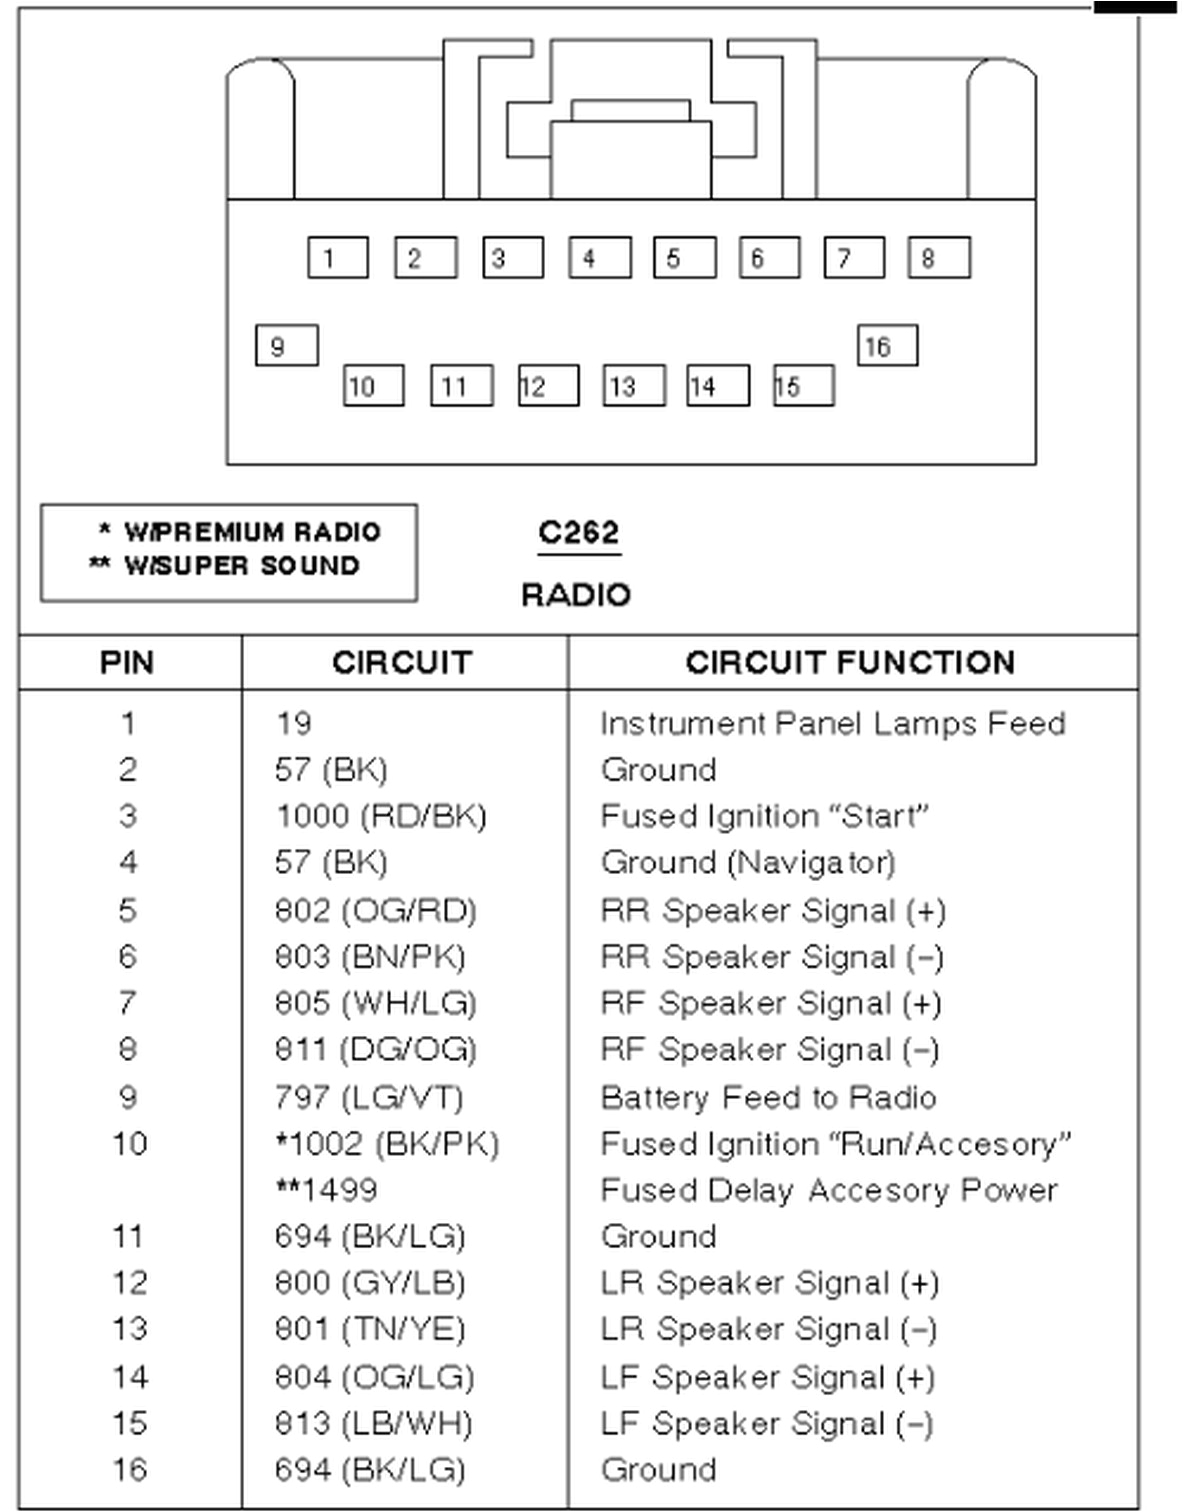 Ford Expedition Stereo Wiring Diagram Diagram 2013 ford Fiesta Radio Wiring Diagram Full Version